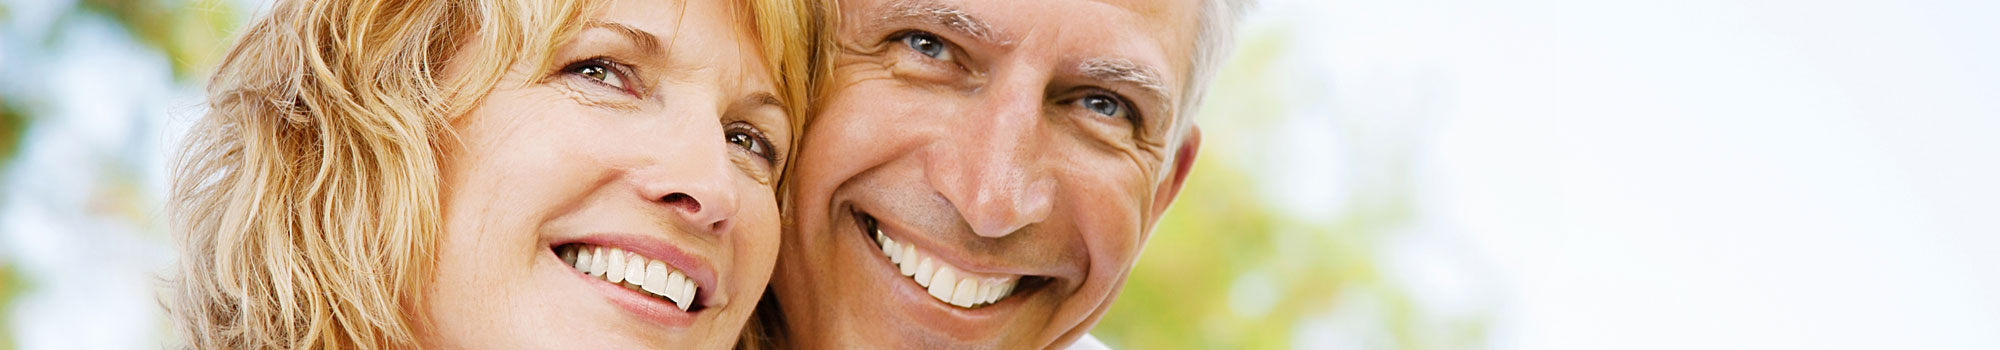 Dental Implants from Aesthetic and Implant Dentistry Of North Alabama